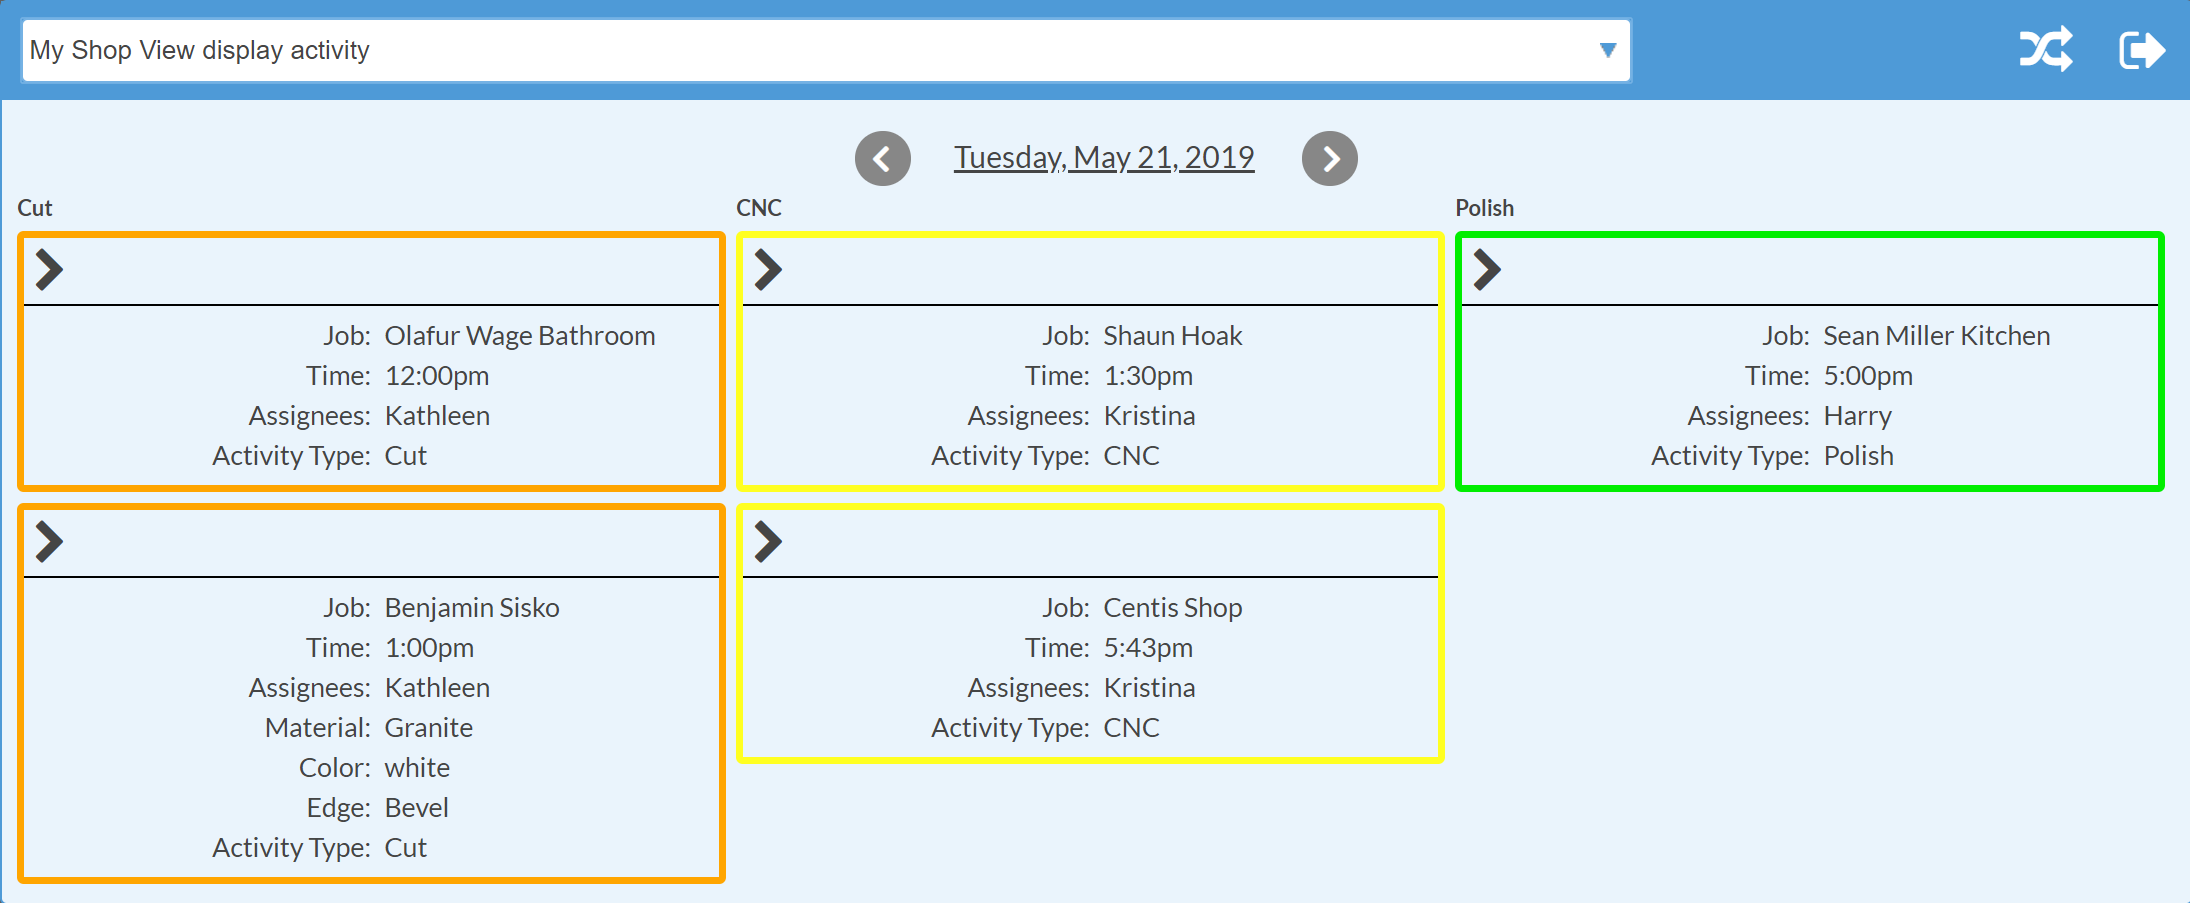 Shop View: Display Columns by Activity Type